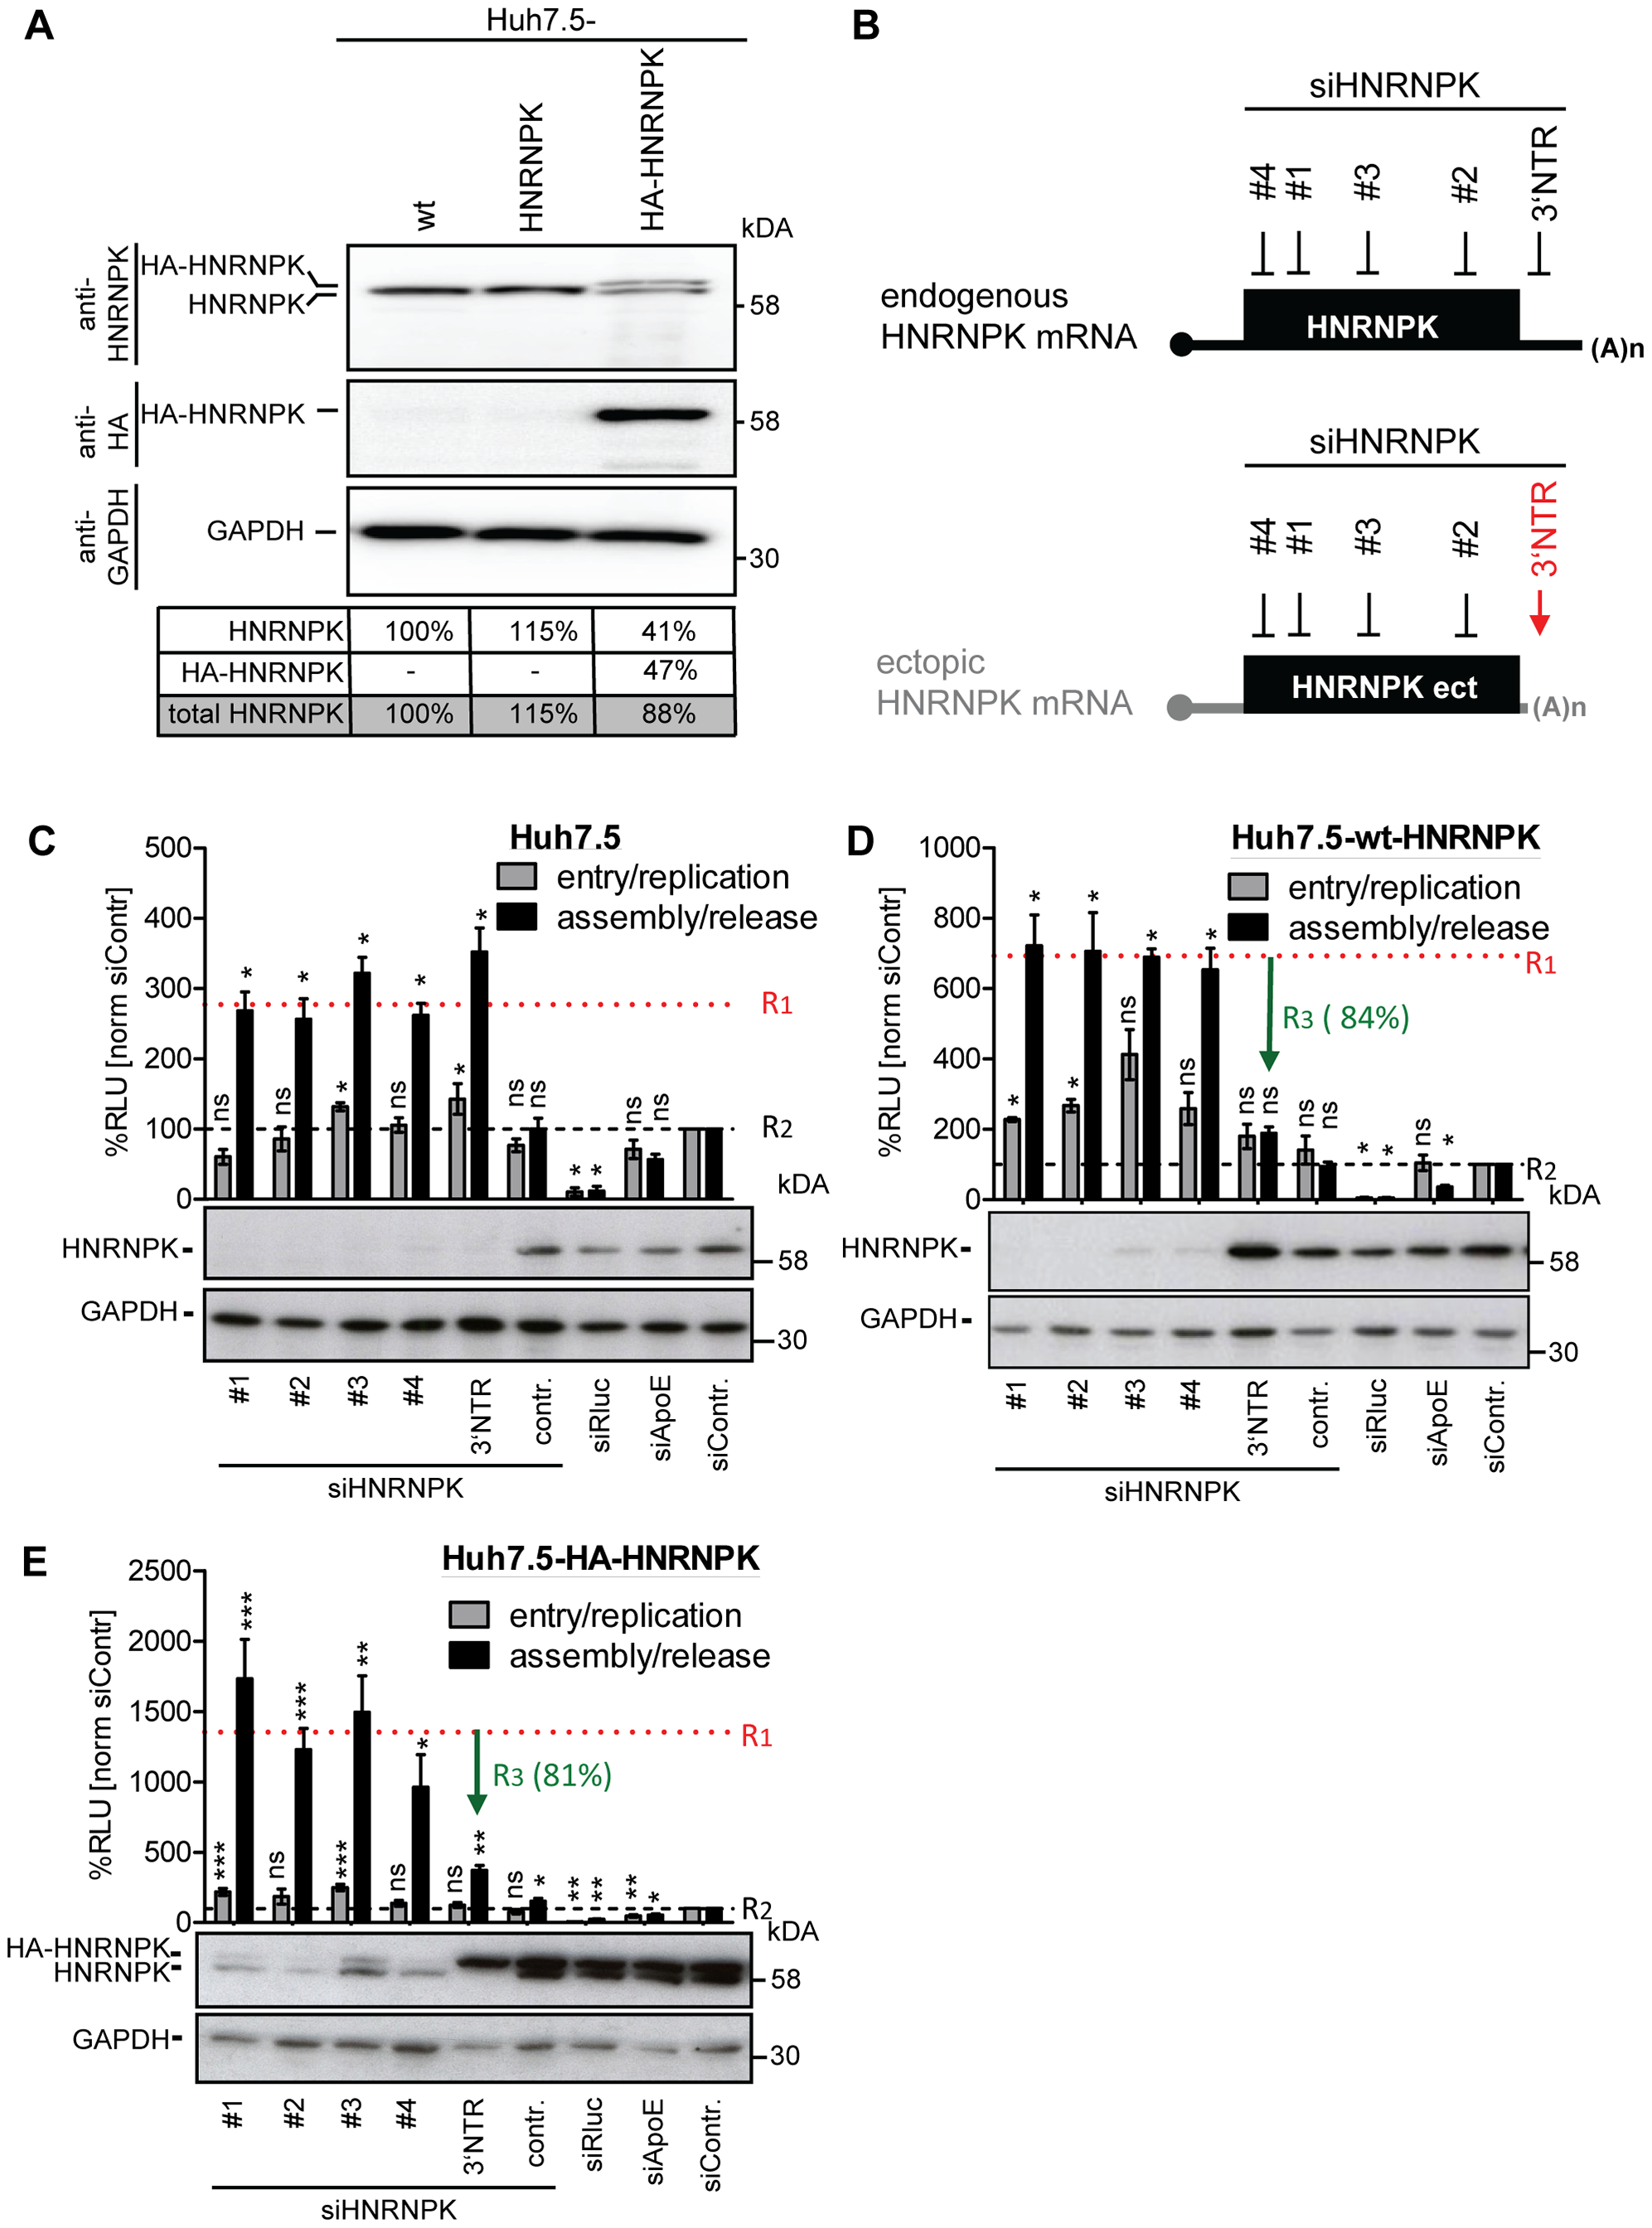 Ectopic expression of HNRNPK restores suppression of virus production in HNRNPK-silenced cells.